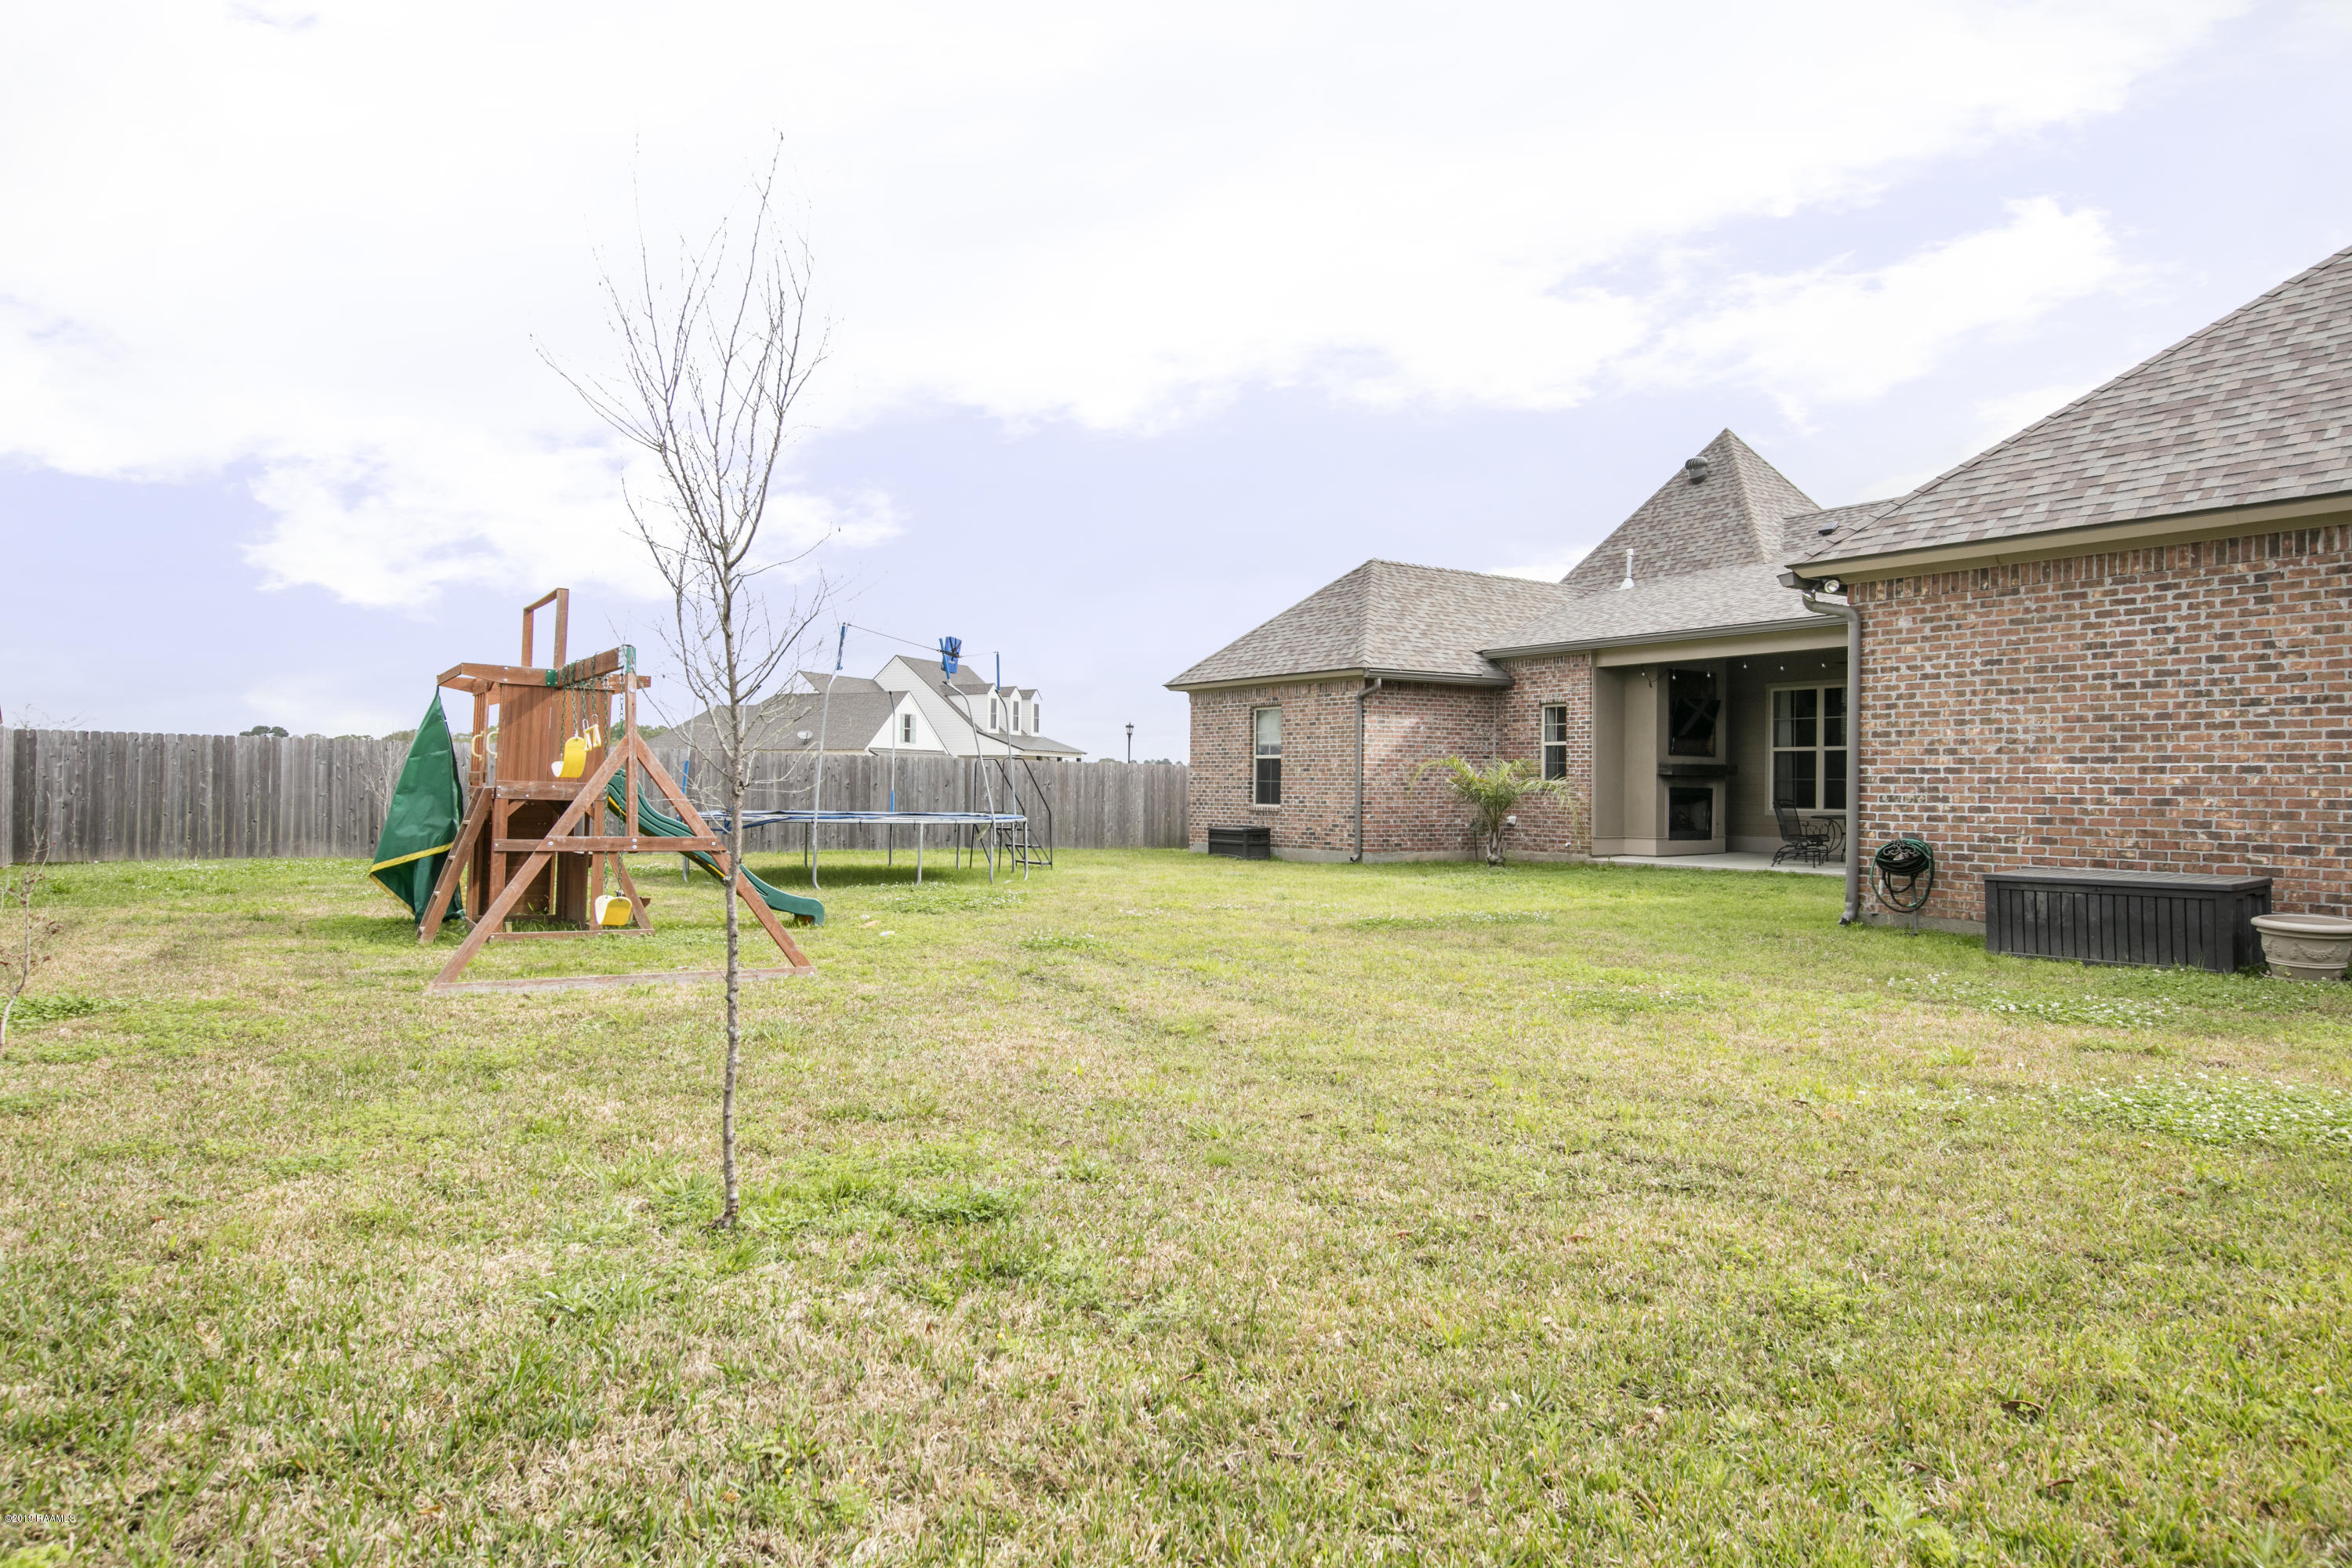 107 Royal Palms Drive, Broussard, LA 70518 Photo #23